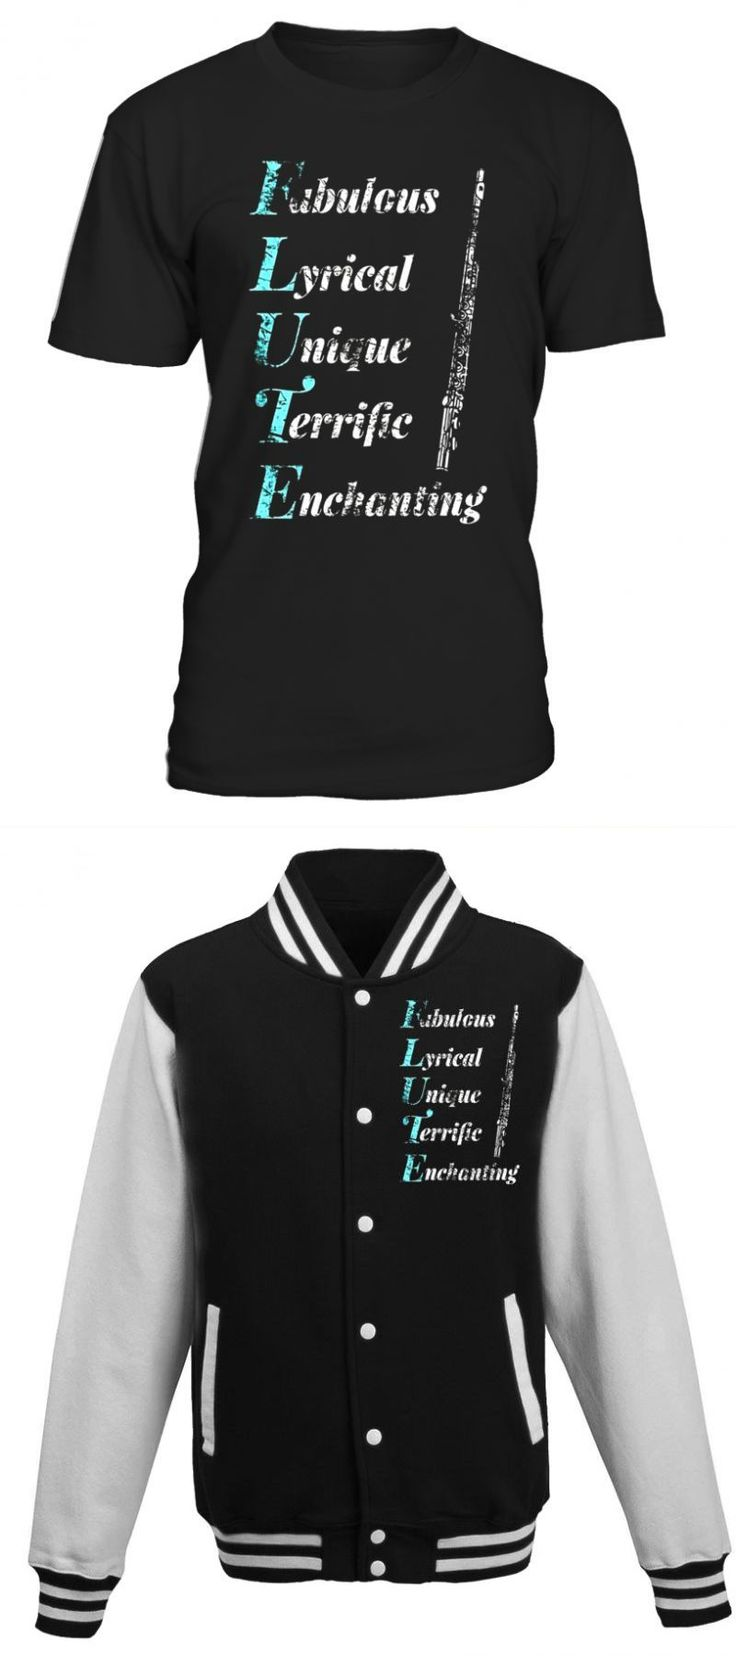 Flute acrostic poem shirt music lovers distressed t